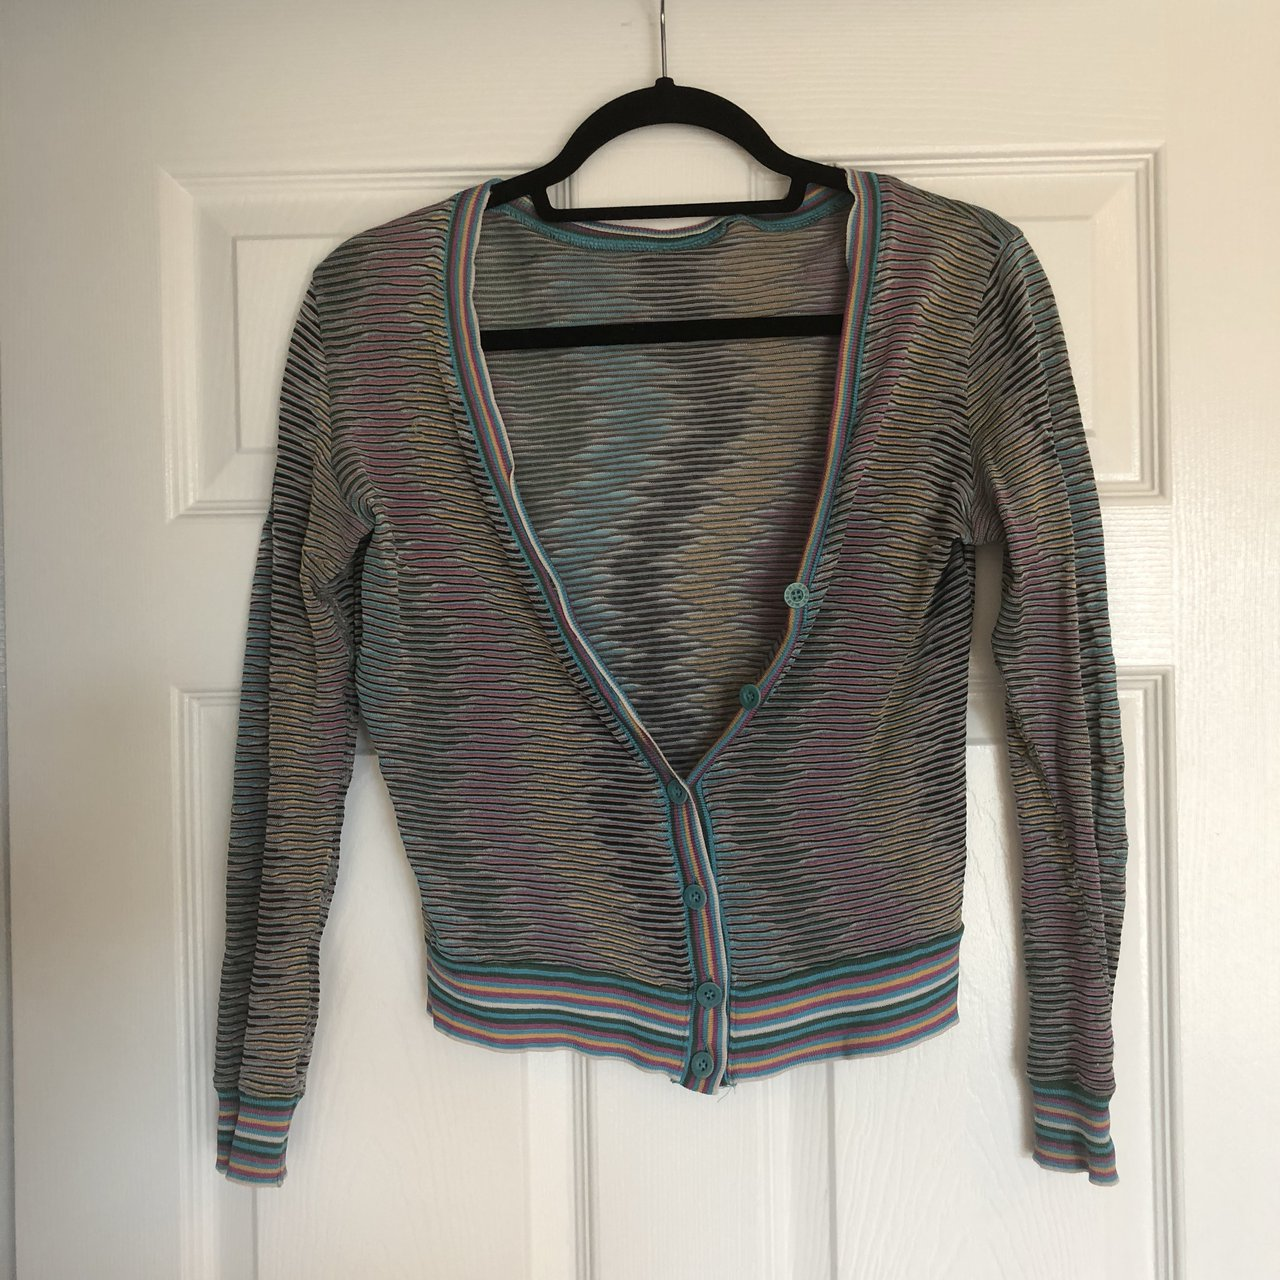 Vintage Missoni cardigan. Size 44. Fits like a size small. a - Depop 5a4e04dad